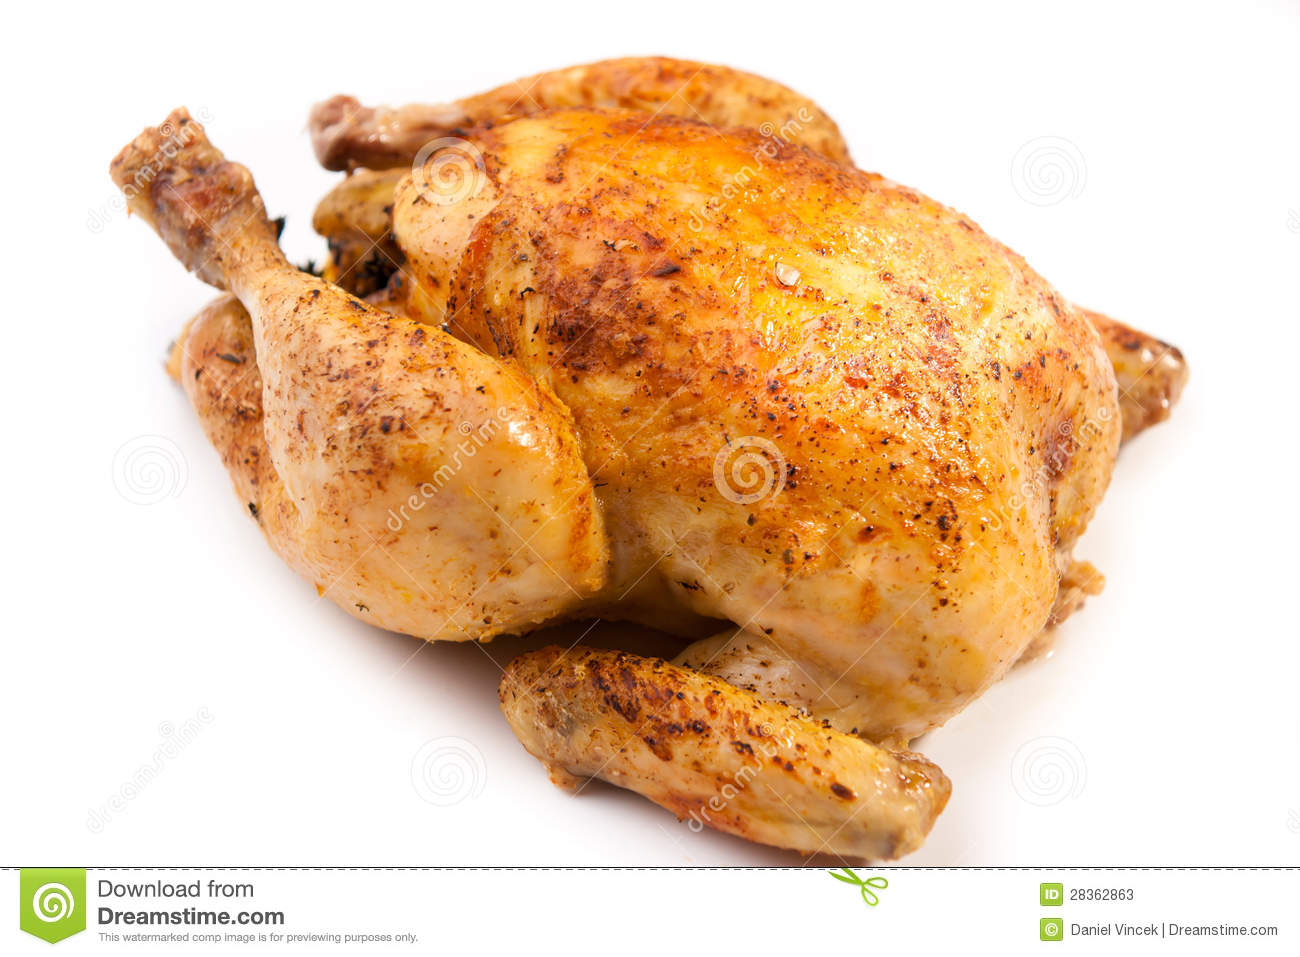 roast chicken cartoon vector cartoondealer com 29888981 chicken leg image clipart chicken drumsticks clipart